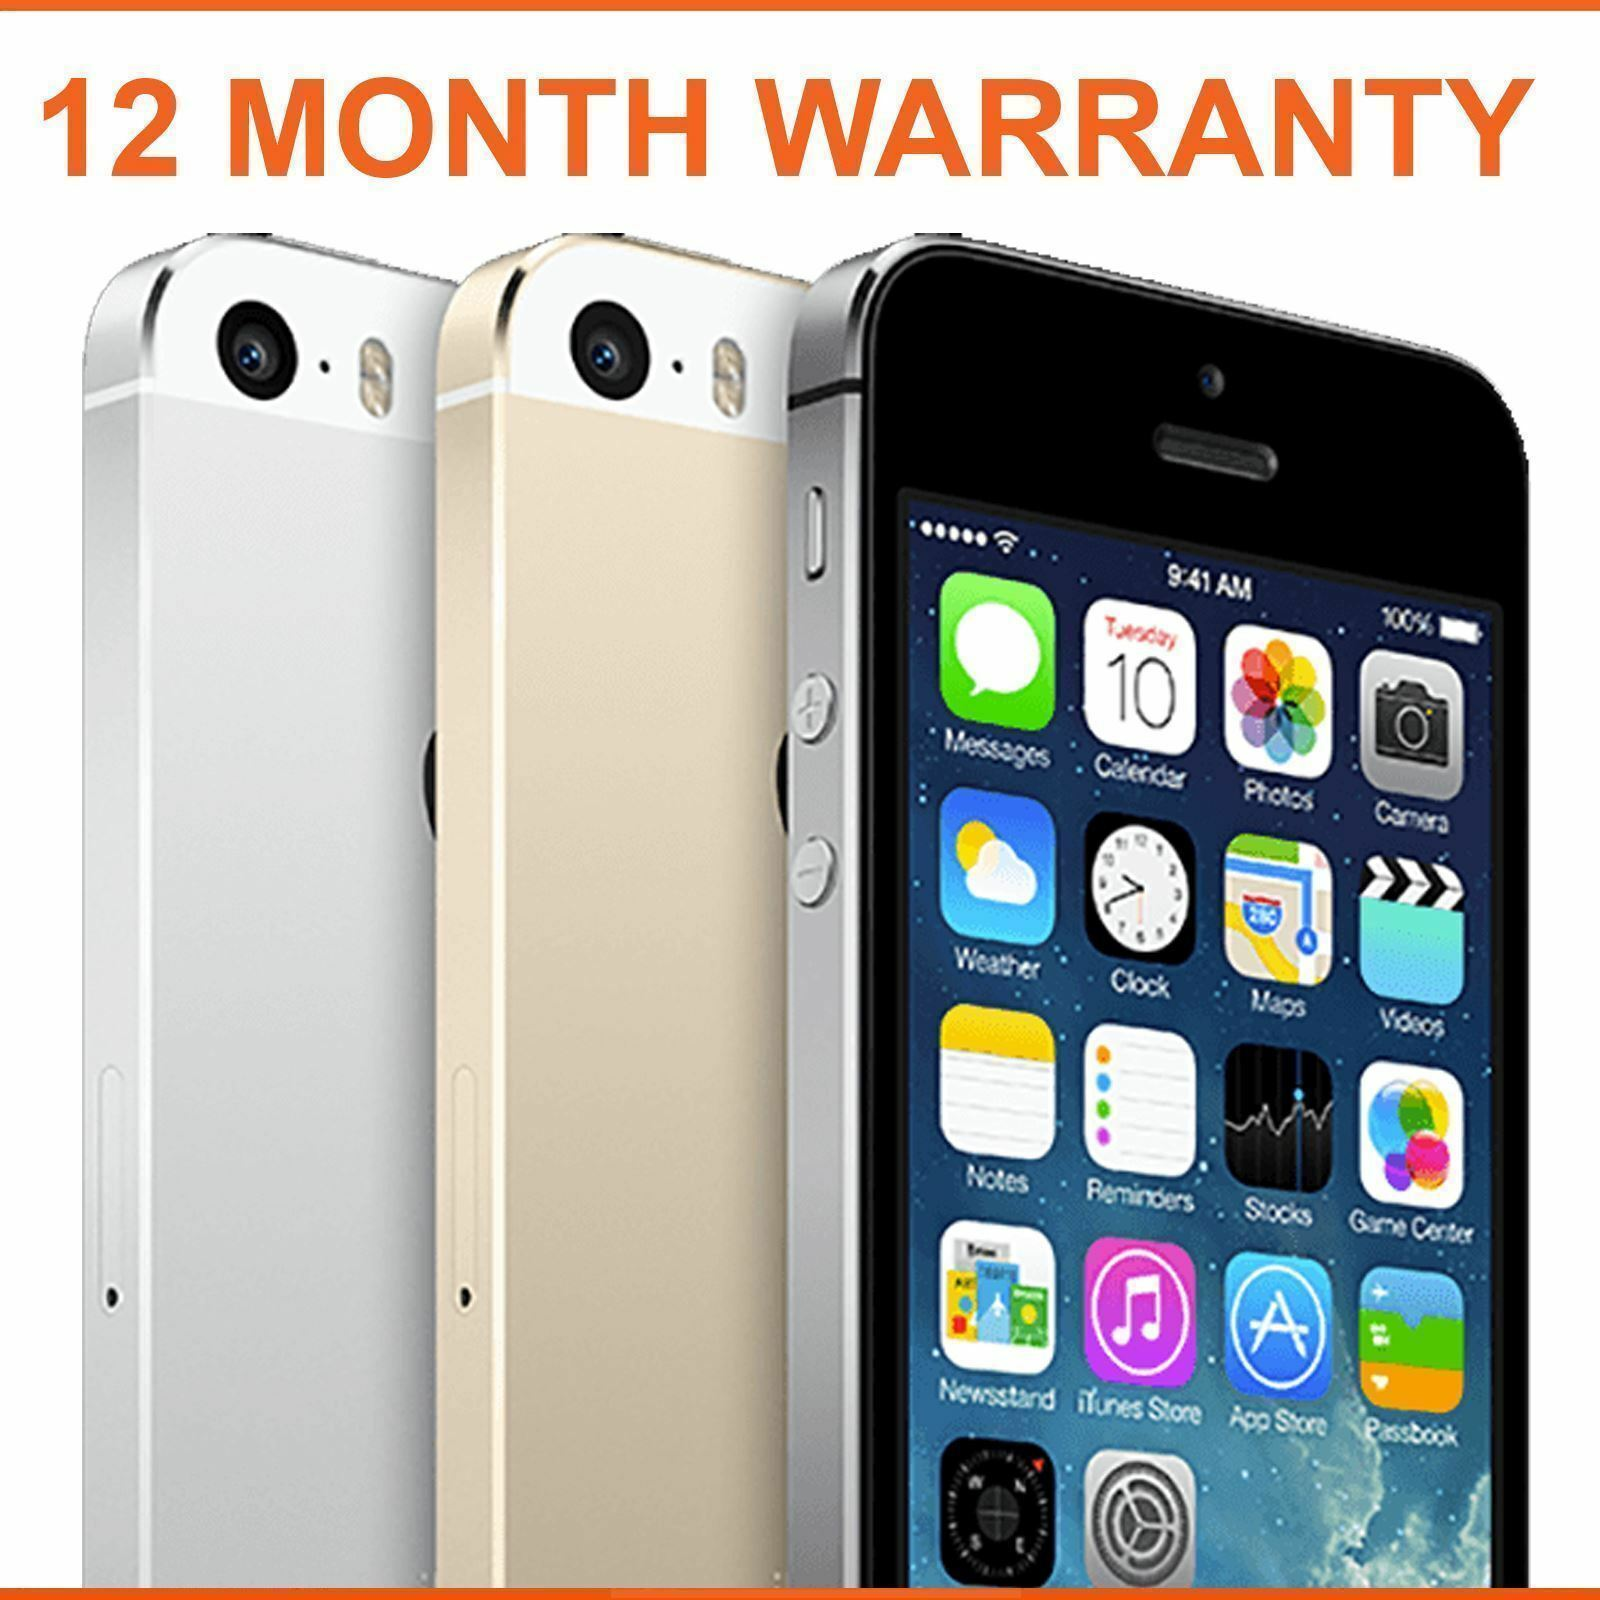 SELLER REFURBISHED APPLE IPHONE 5S 16GB 32GB 64GB SPACE GREY SILVER GOLD UNLOCKED SMARTPHONE